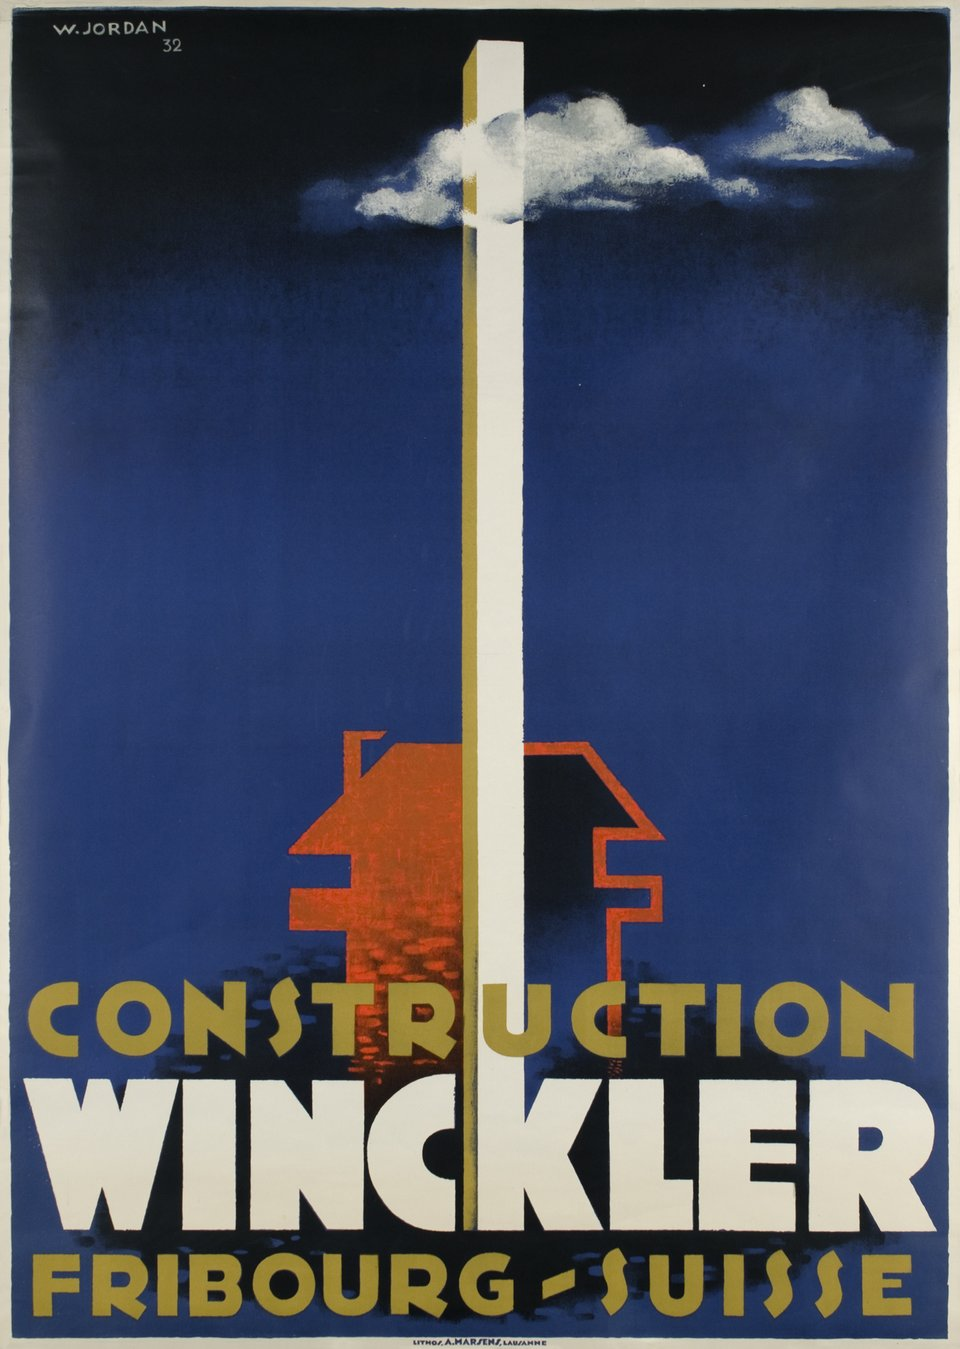 Fribourg, Construction Winckler, Suisse – Affiche ancienne – Willy JORDAN – 1932